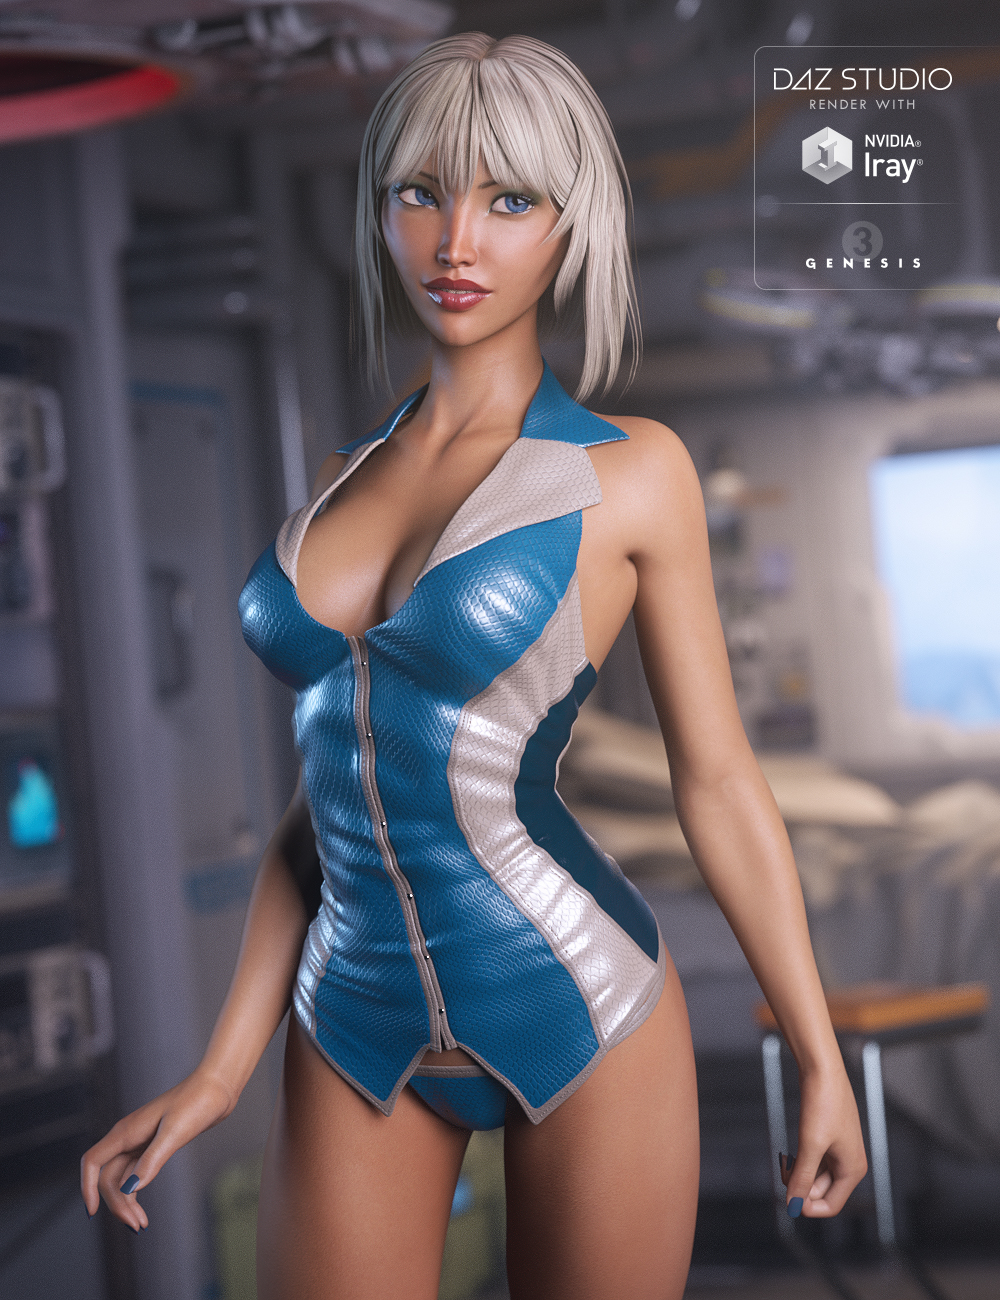 Ayumi for Aiko 7 by: 3DSublimeProductionsFred Winkler ArtSabby, 3D Models by Daz 3D